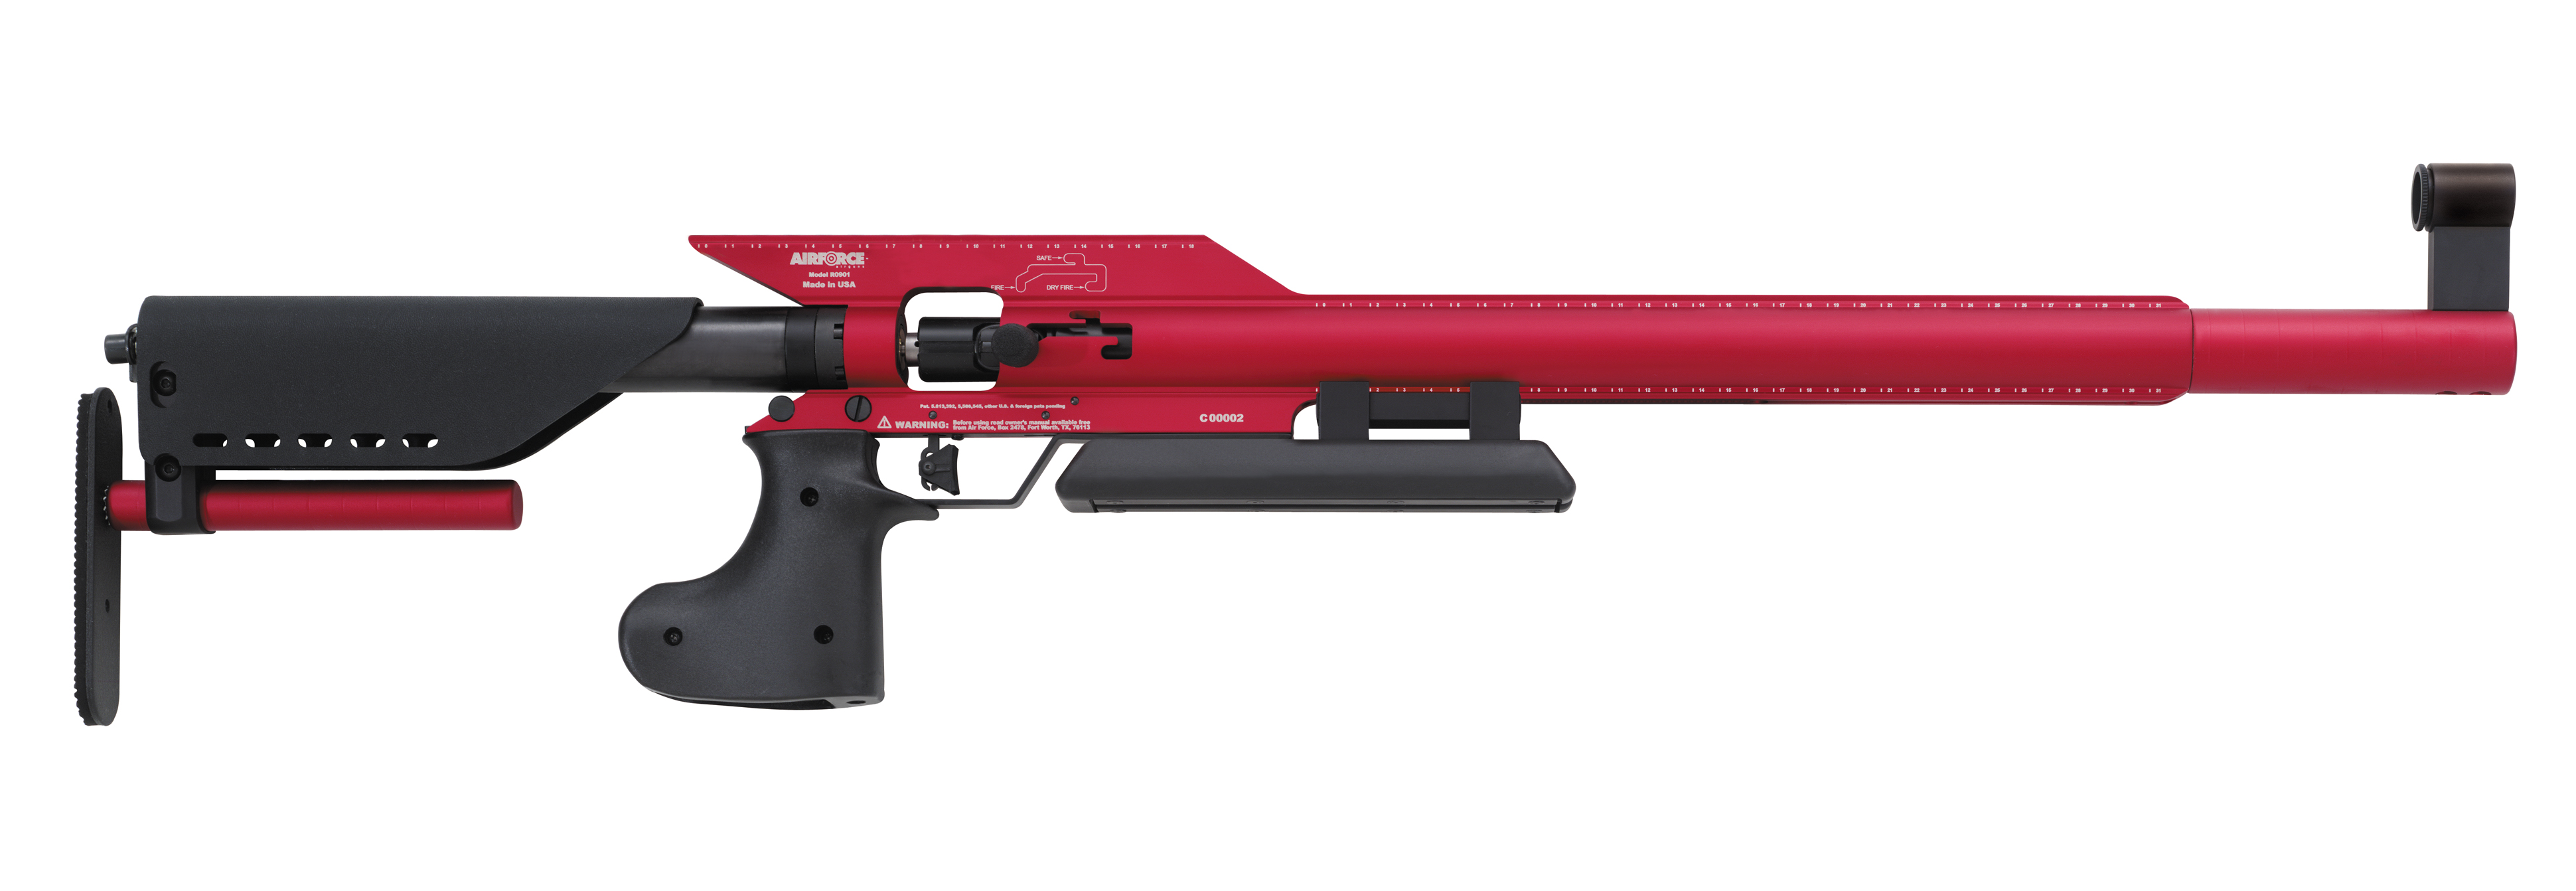 AirForce Edge, 3-Position Sporter Class Air Rifle.